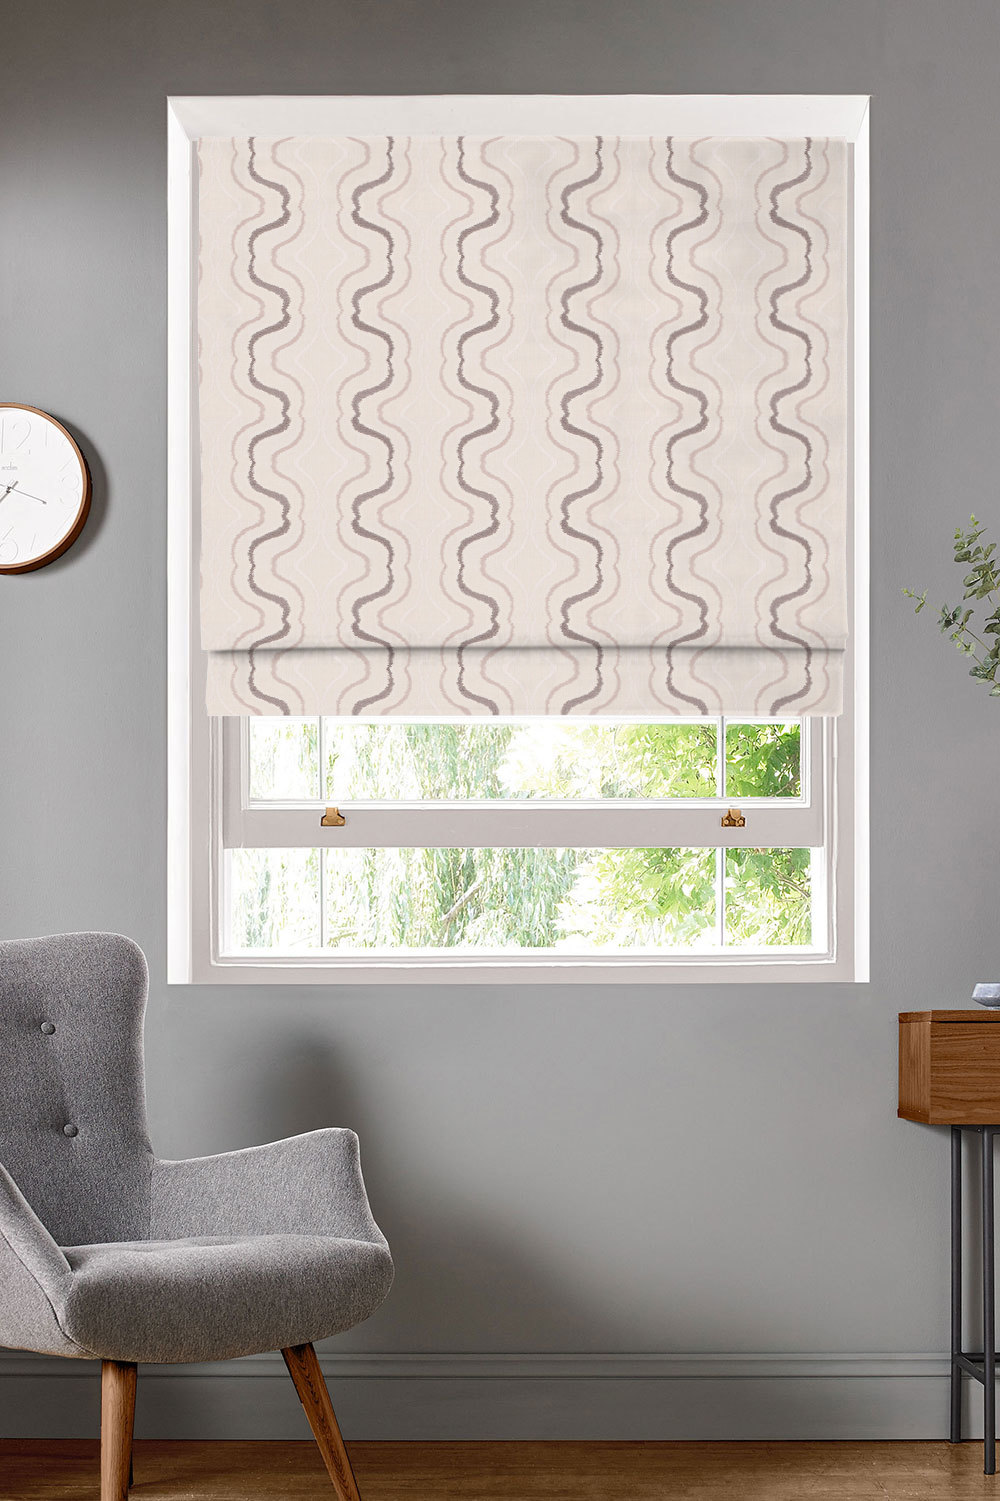 Latina Pebbles Roman Blinds